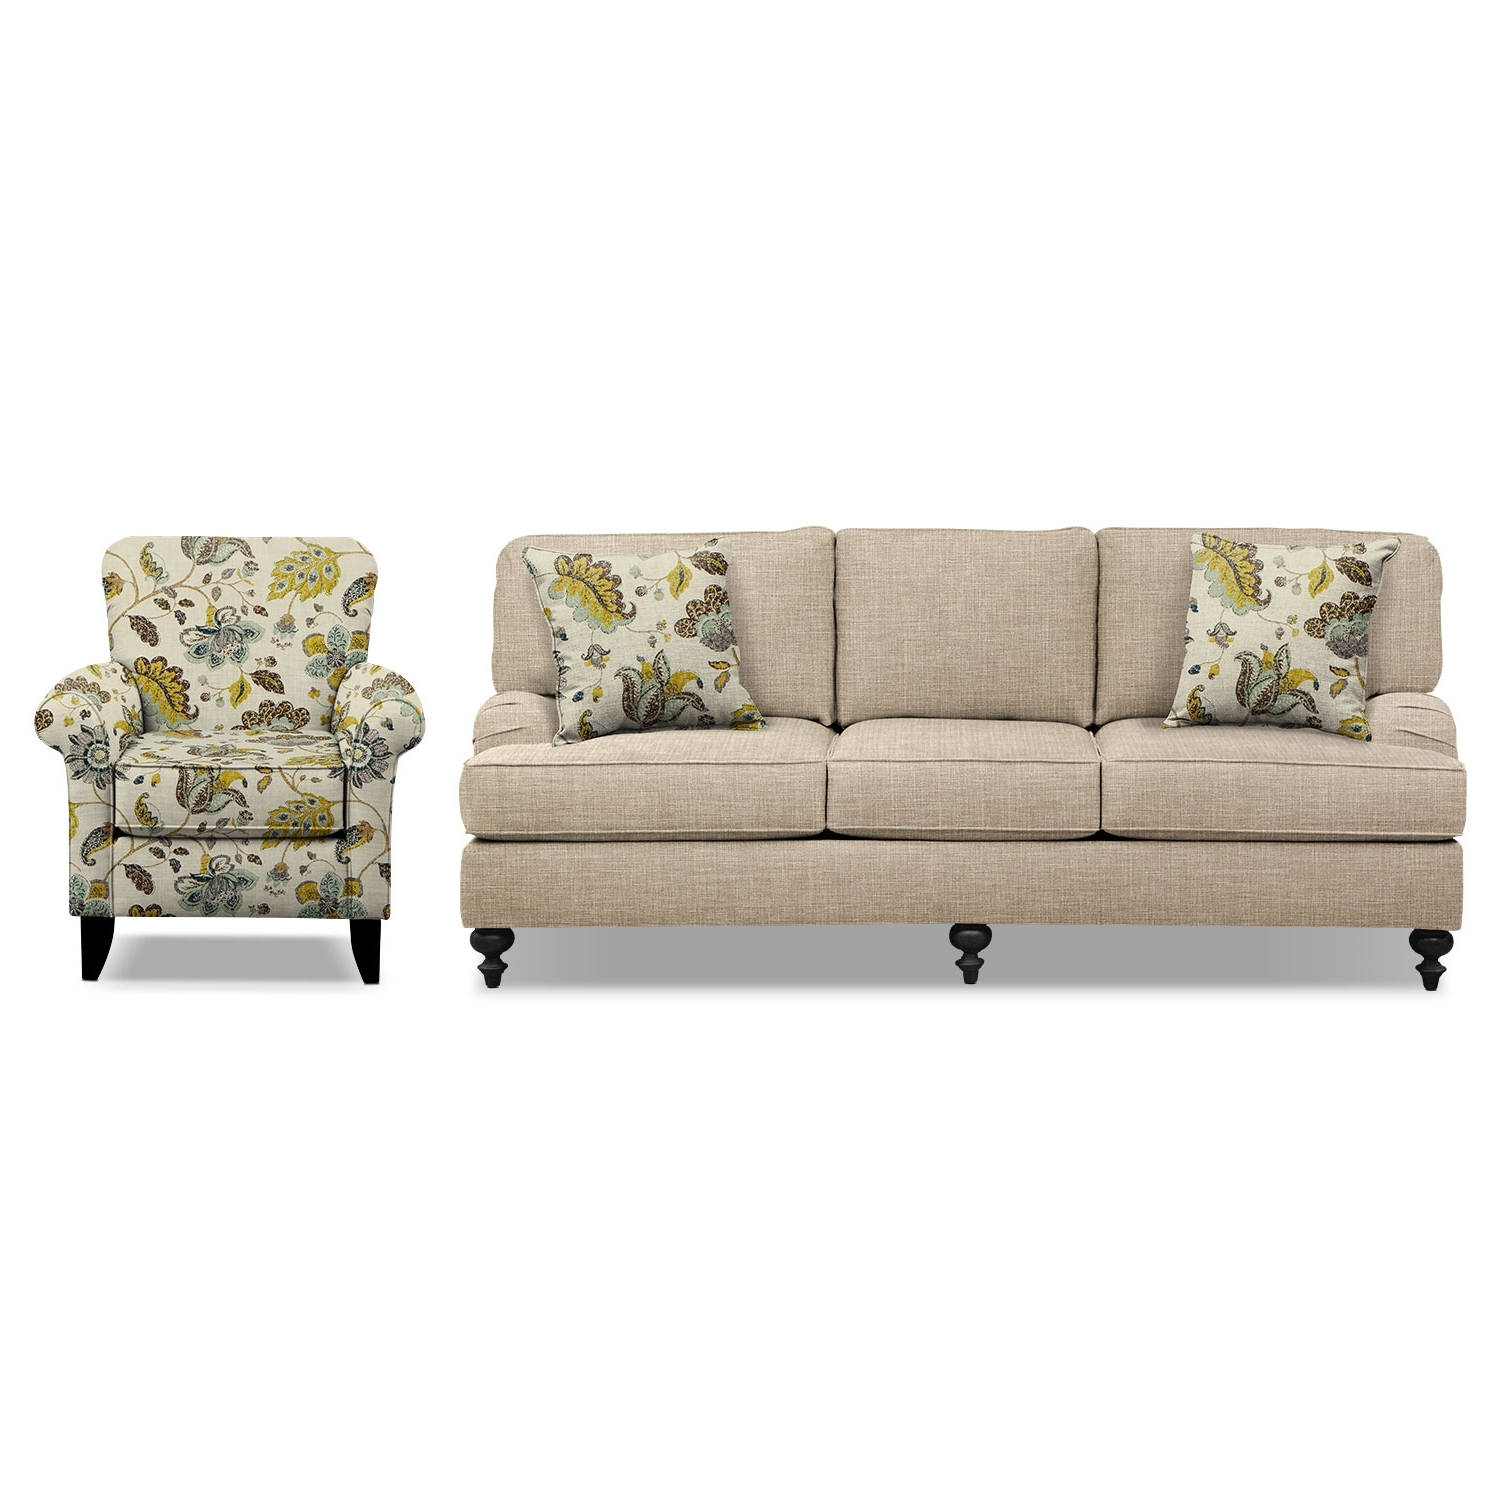 "Accent Sofa Chairs Regarding Trendy Avery Taupe 86"" Sofa And Accent Chair Set (View 11 of 20)"